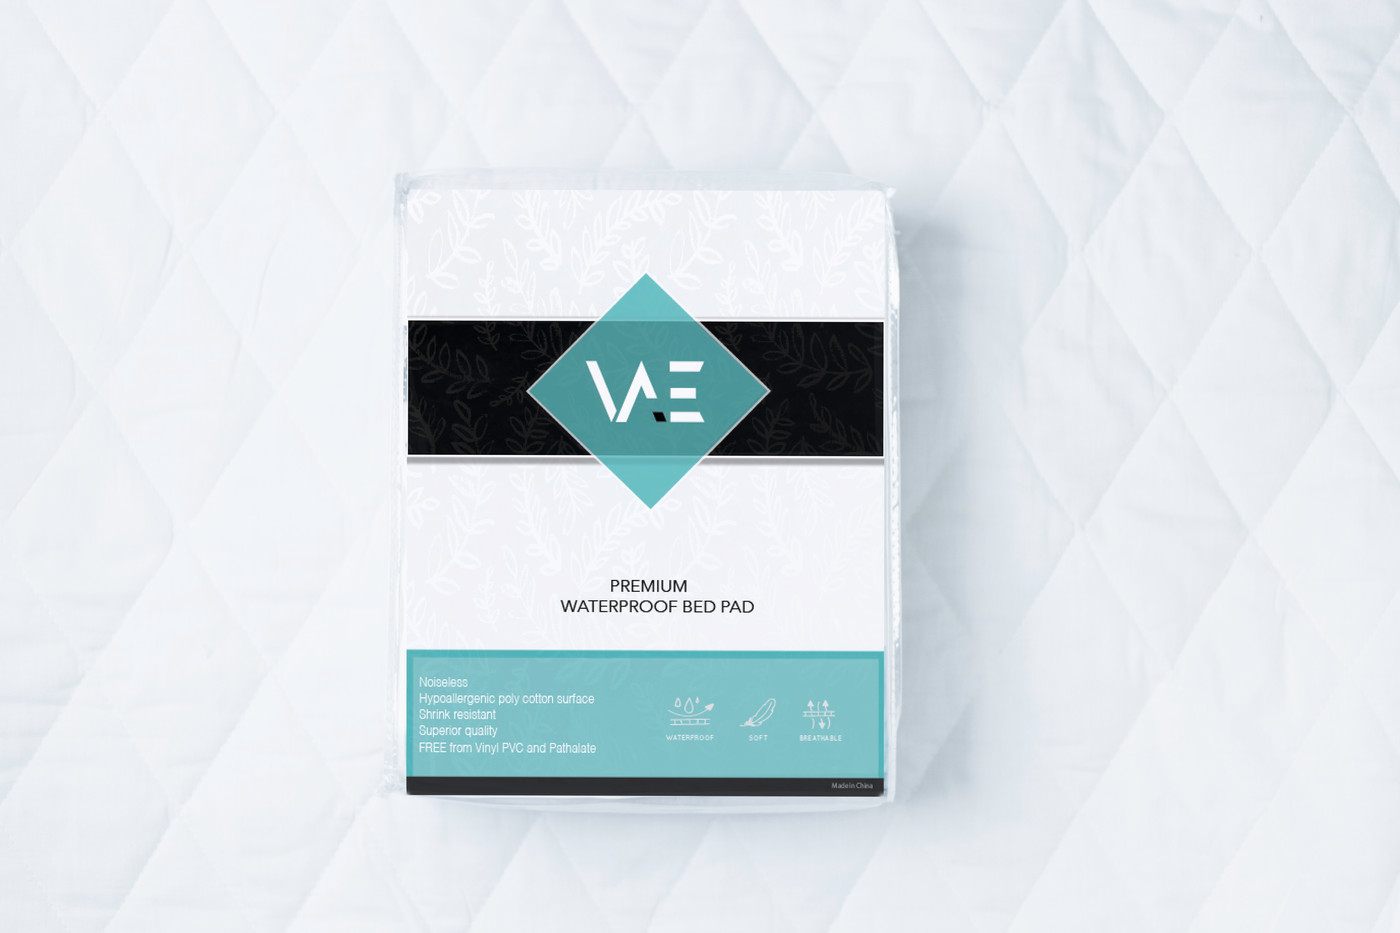 Mattress pad packaging design